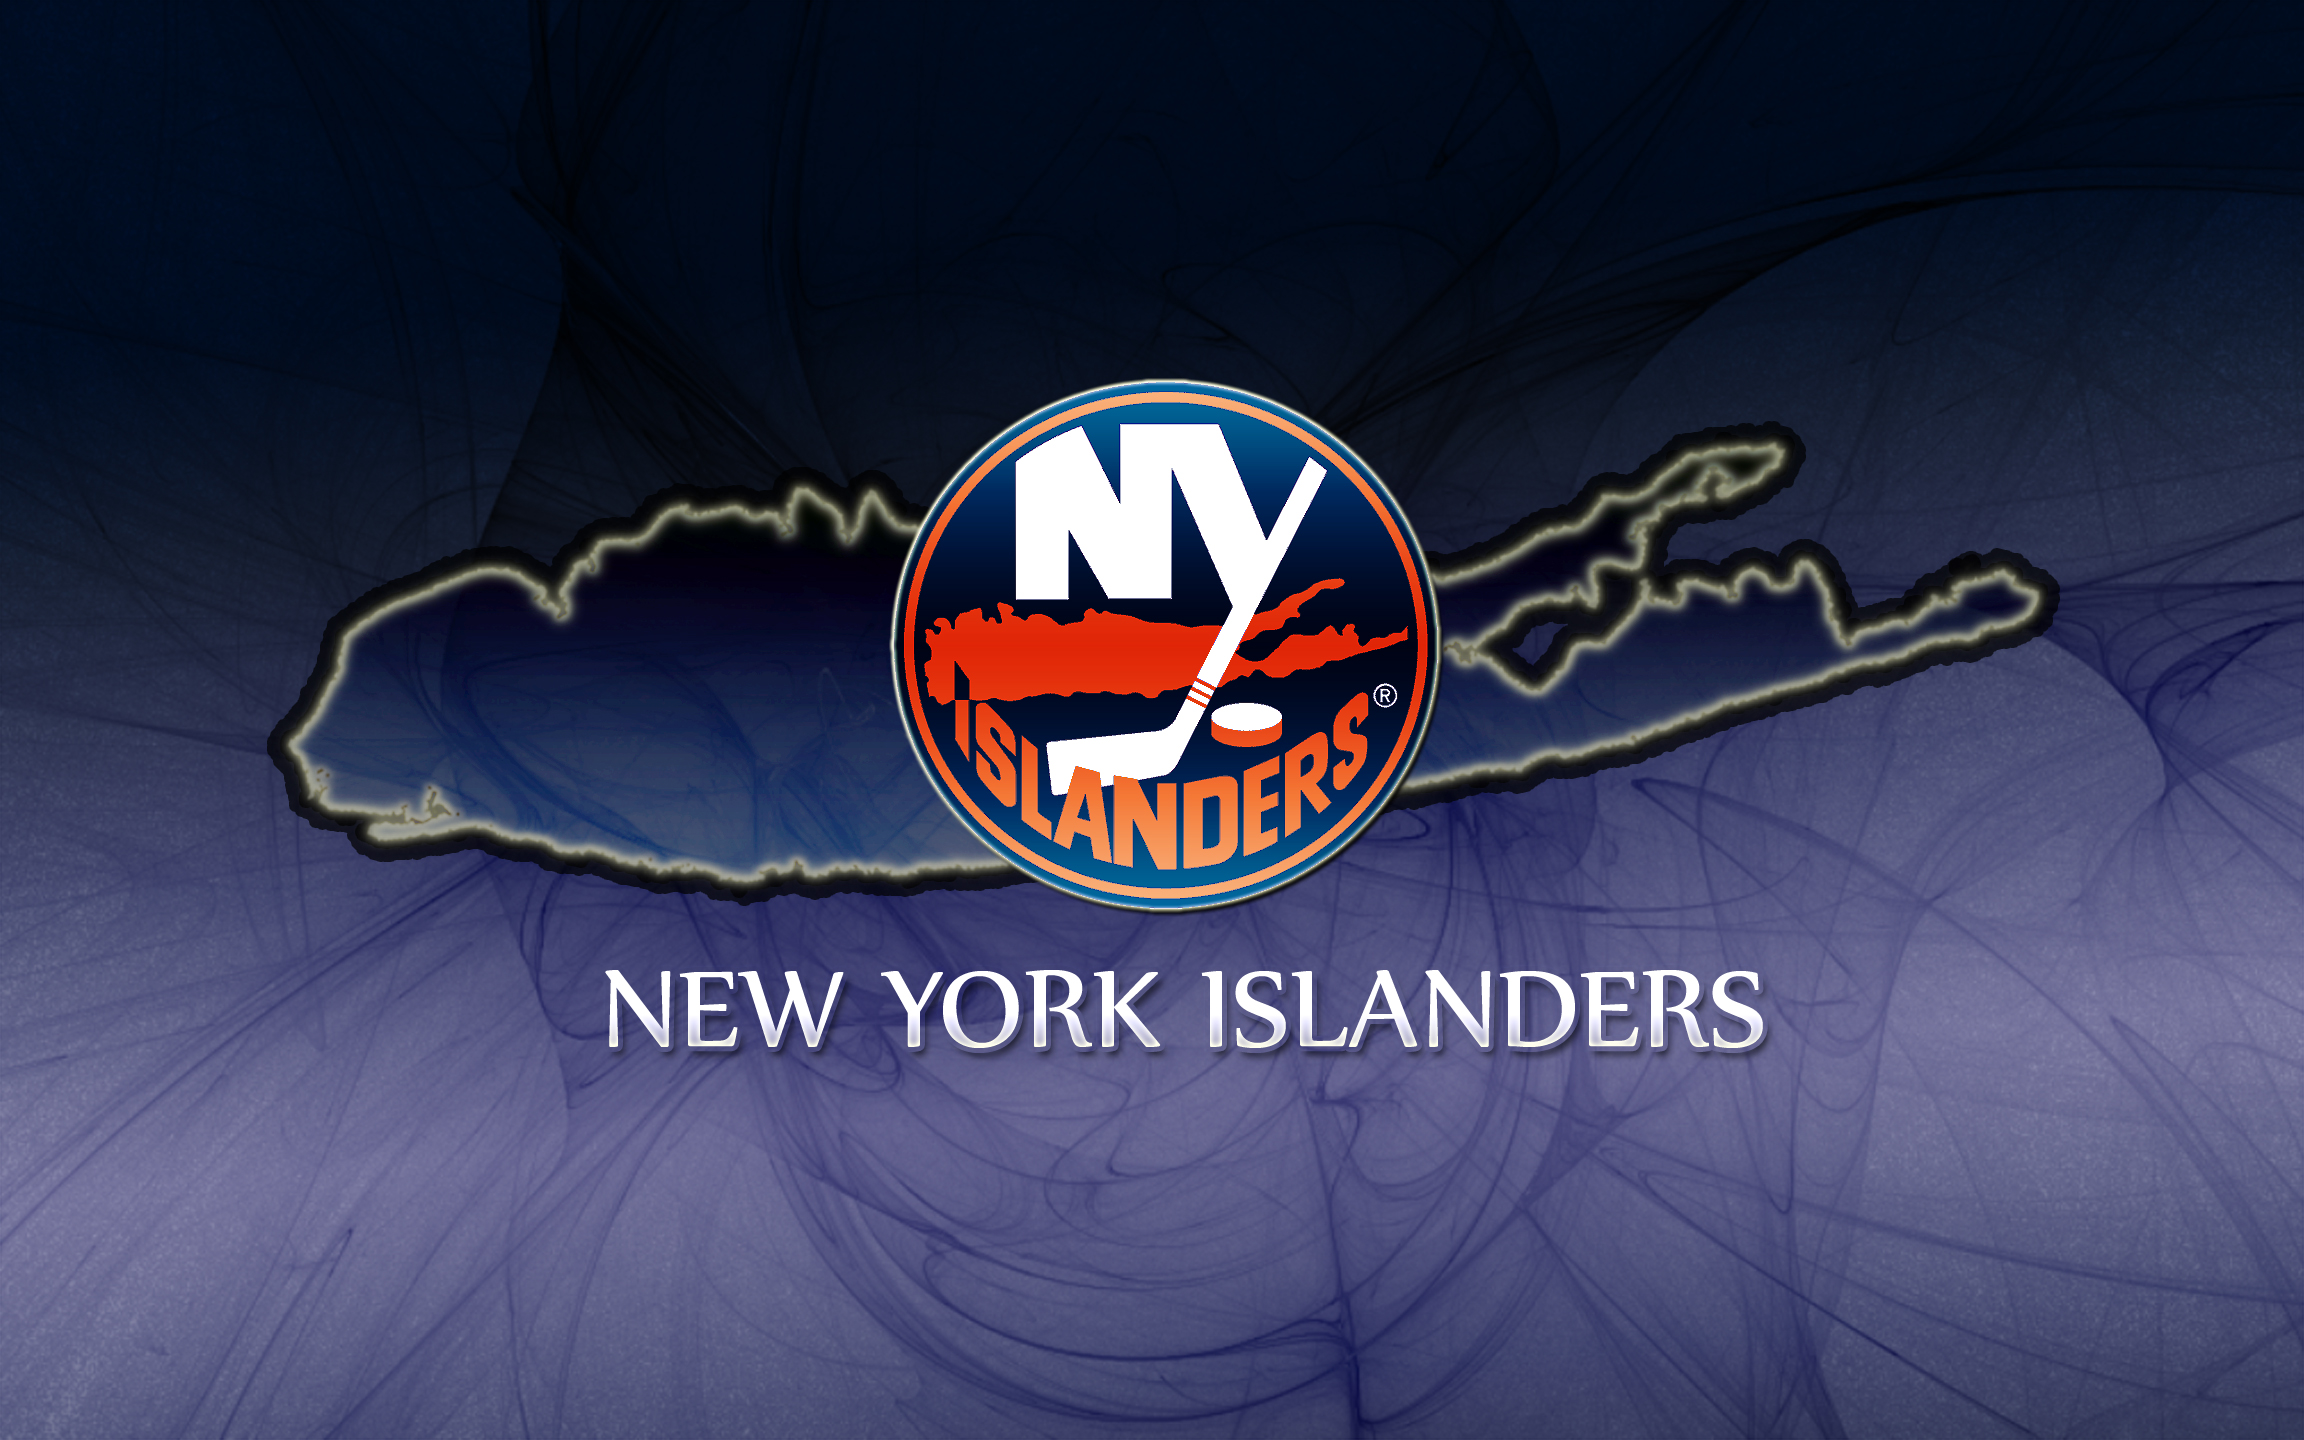 new york islanders The Double Minor Page 2 2304x1440